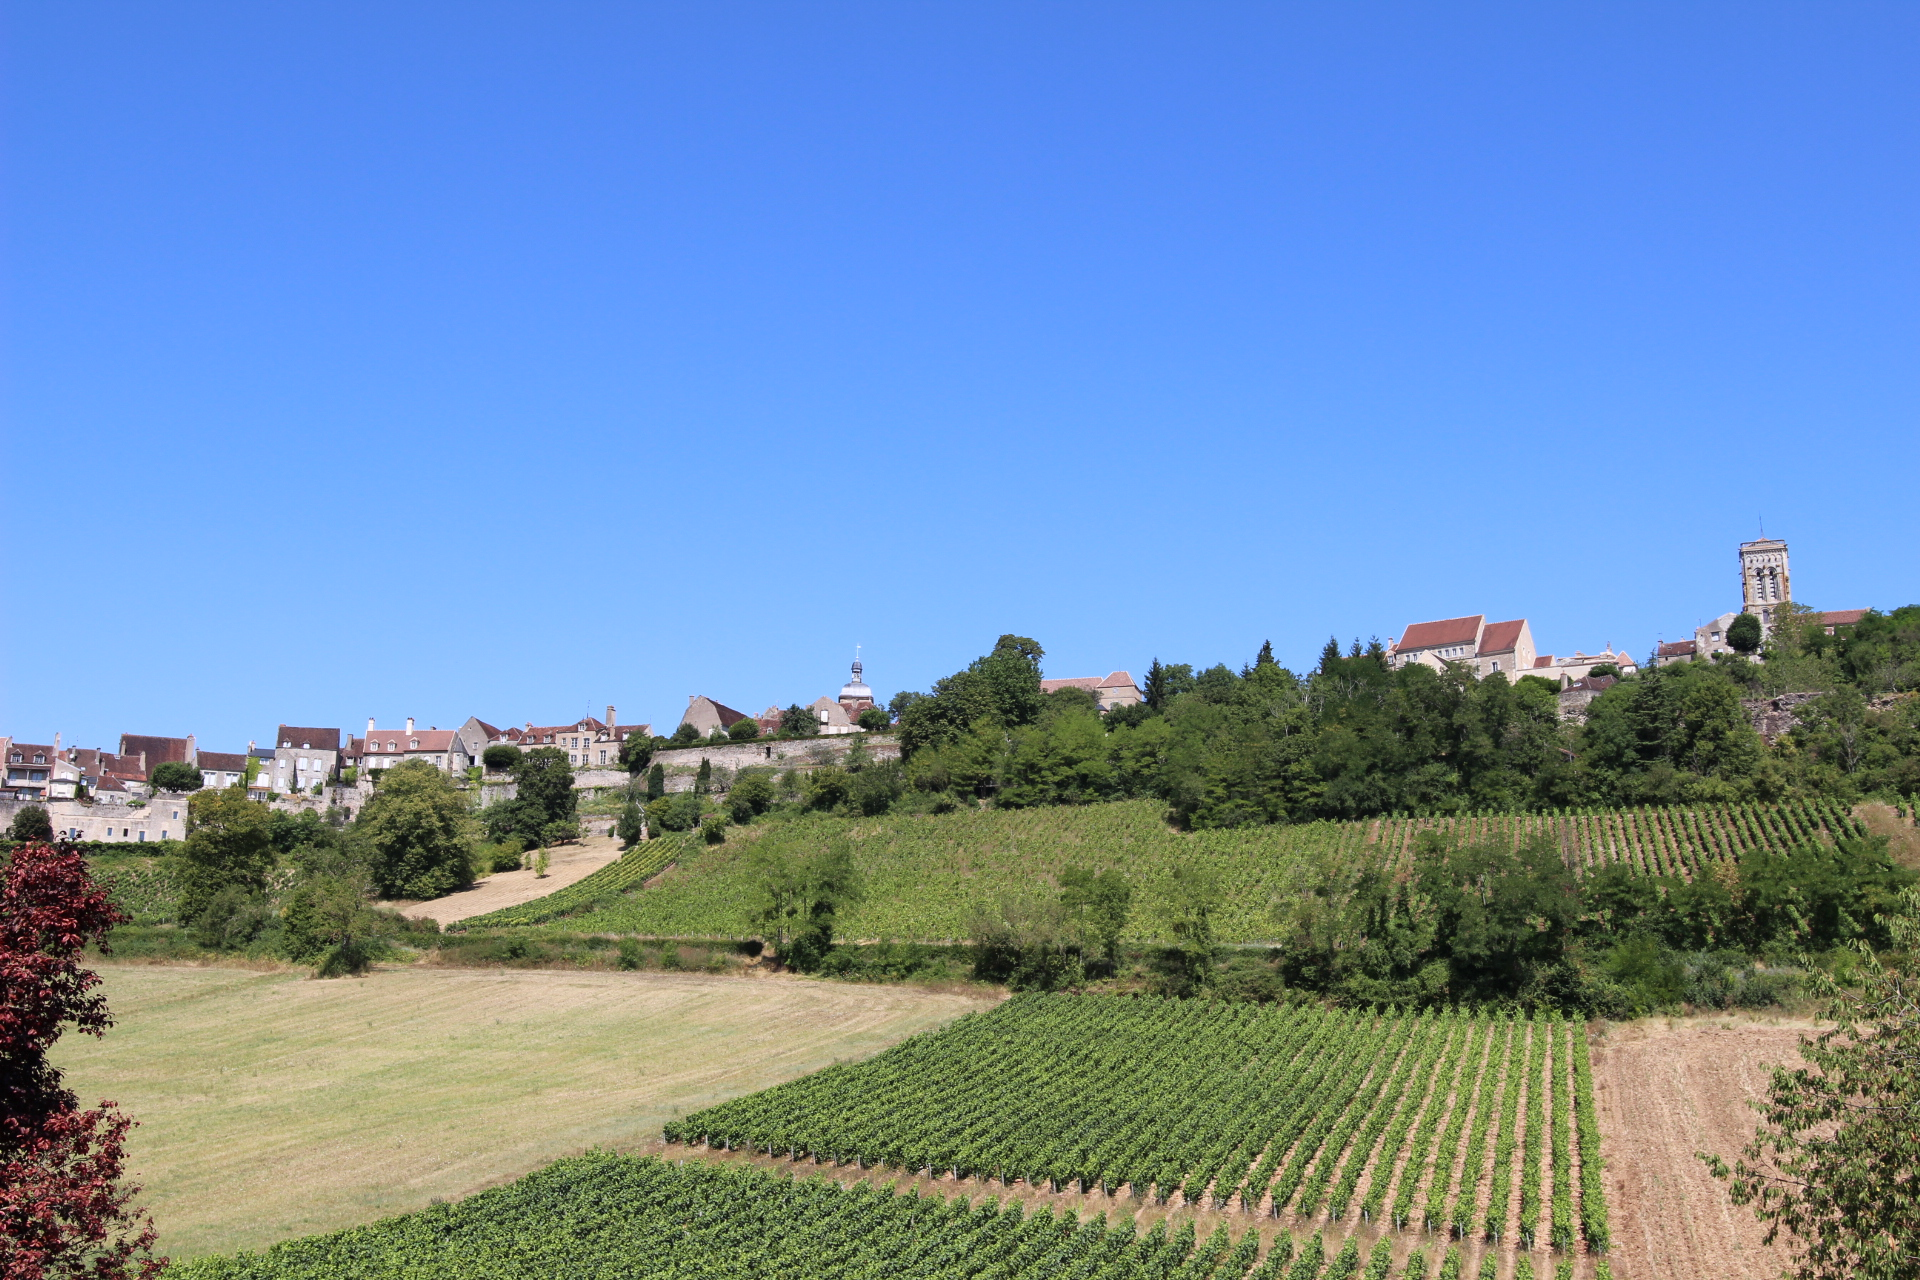 The rebirth of the wines of Vézelay